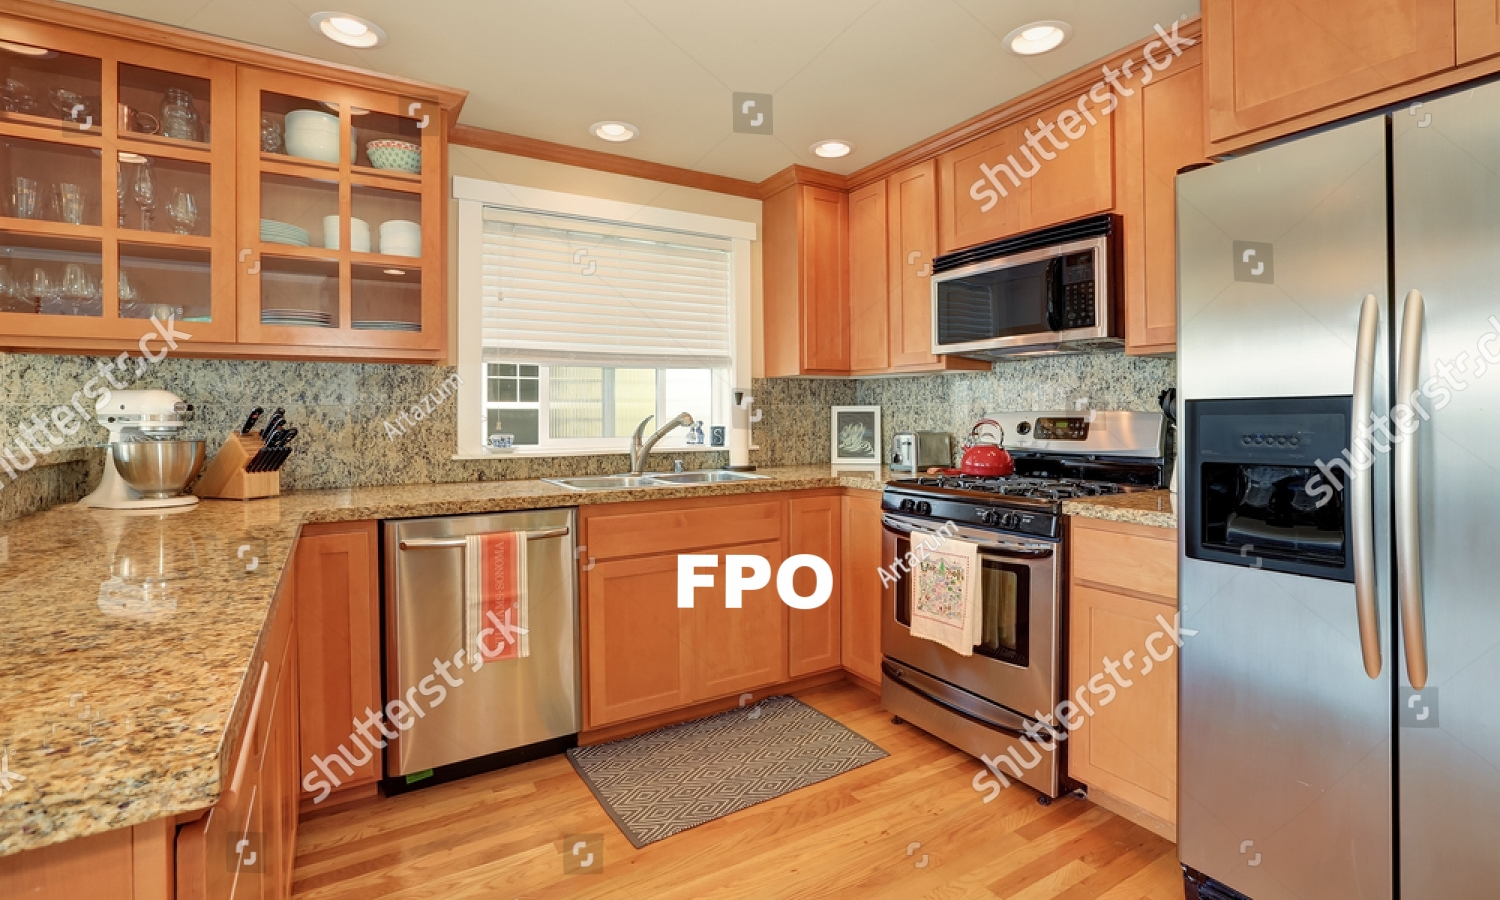 stock-photo-bright-wooden-kitchen-interior-with-steel-appliances-and-granite-counter-top-northwest-usa-471949055.jpg